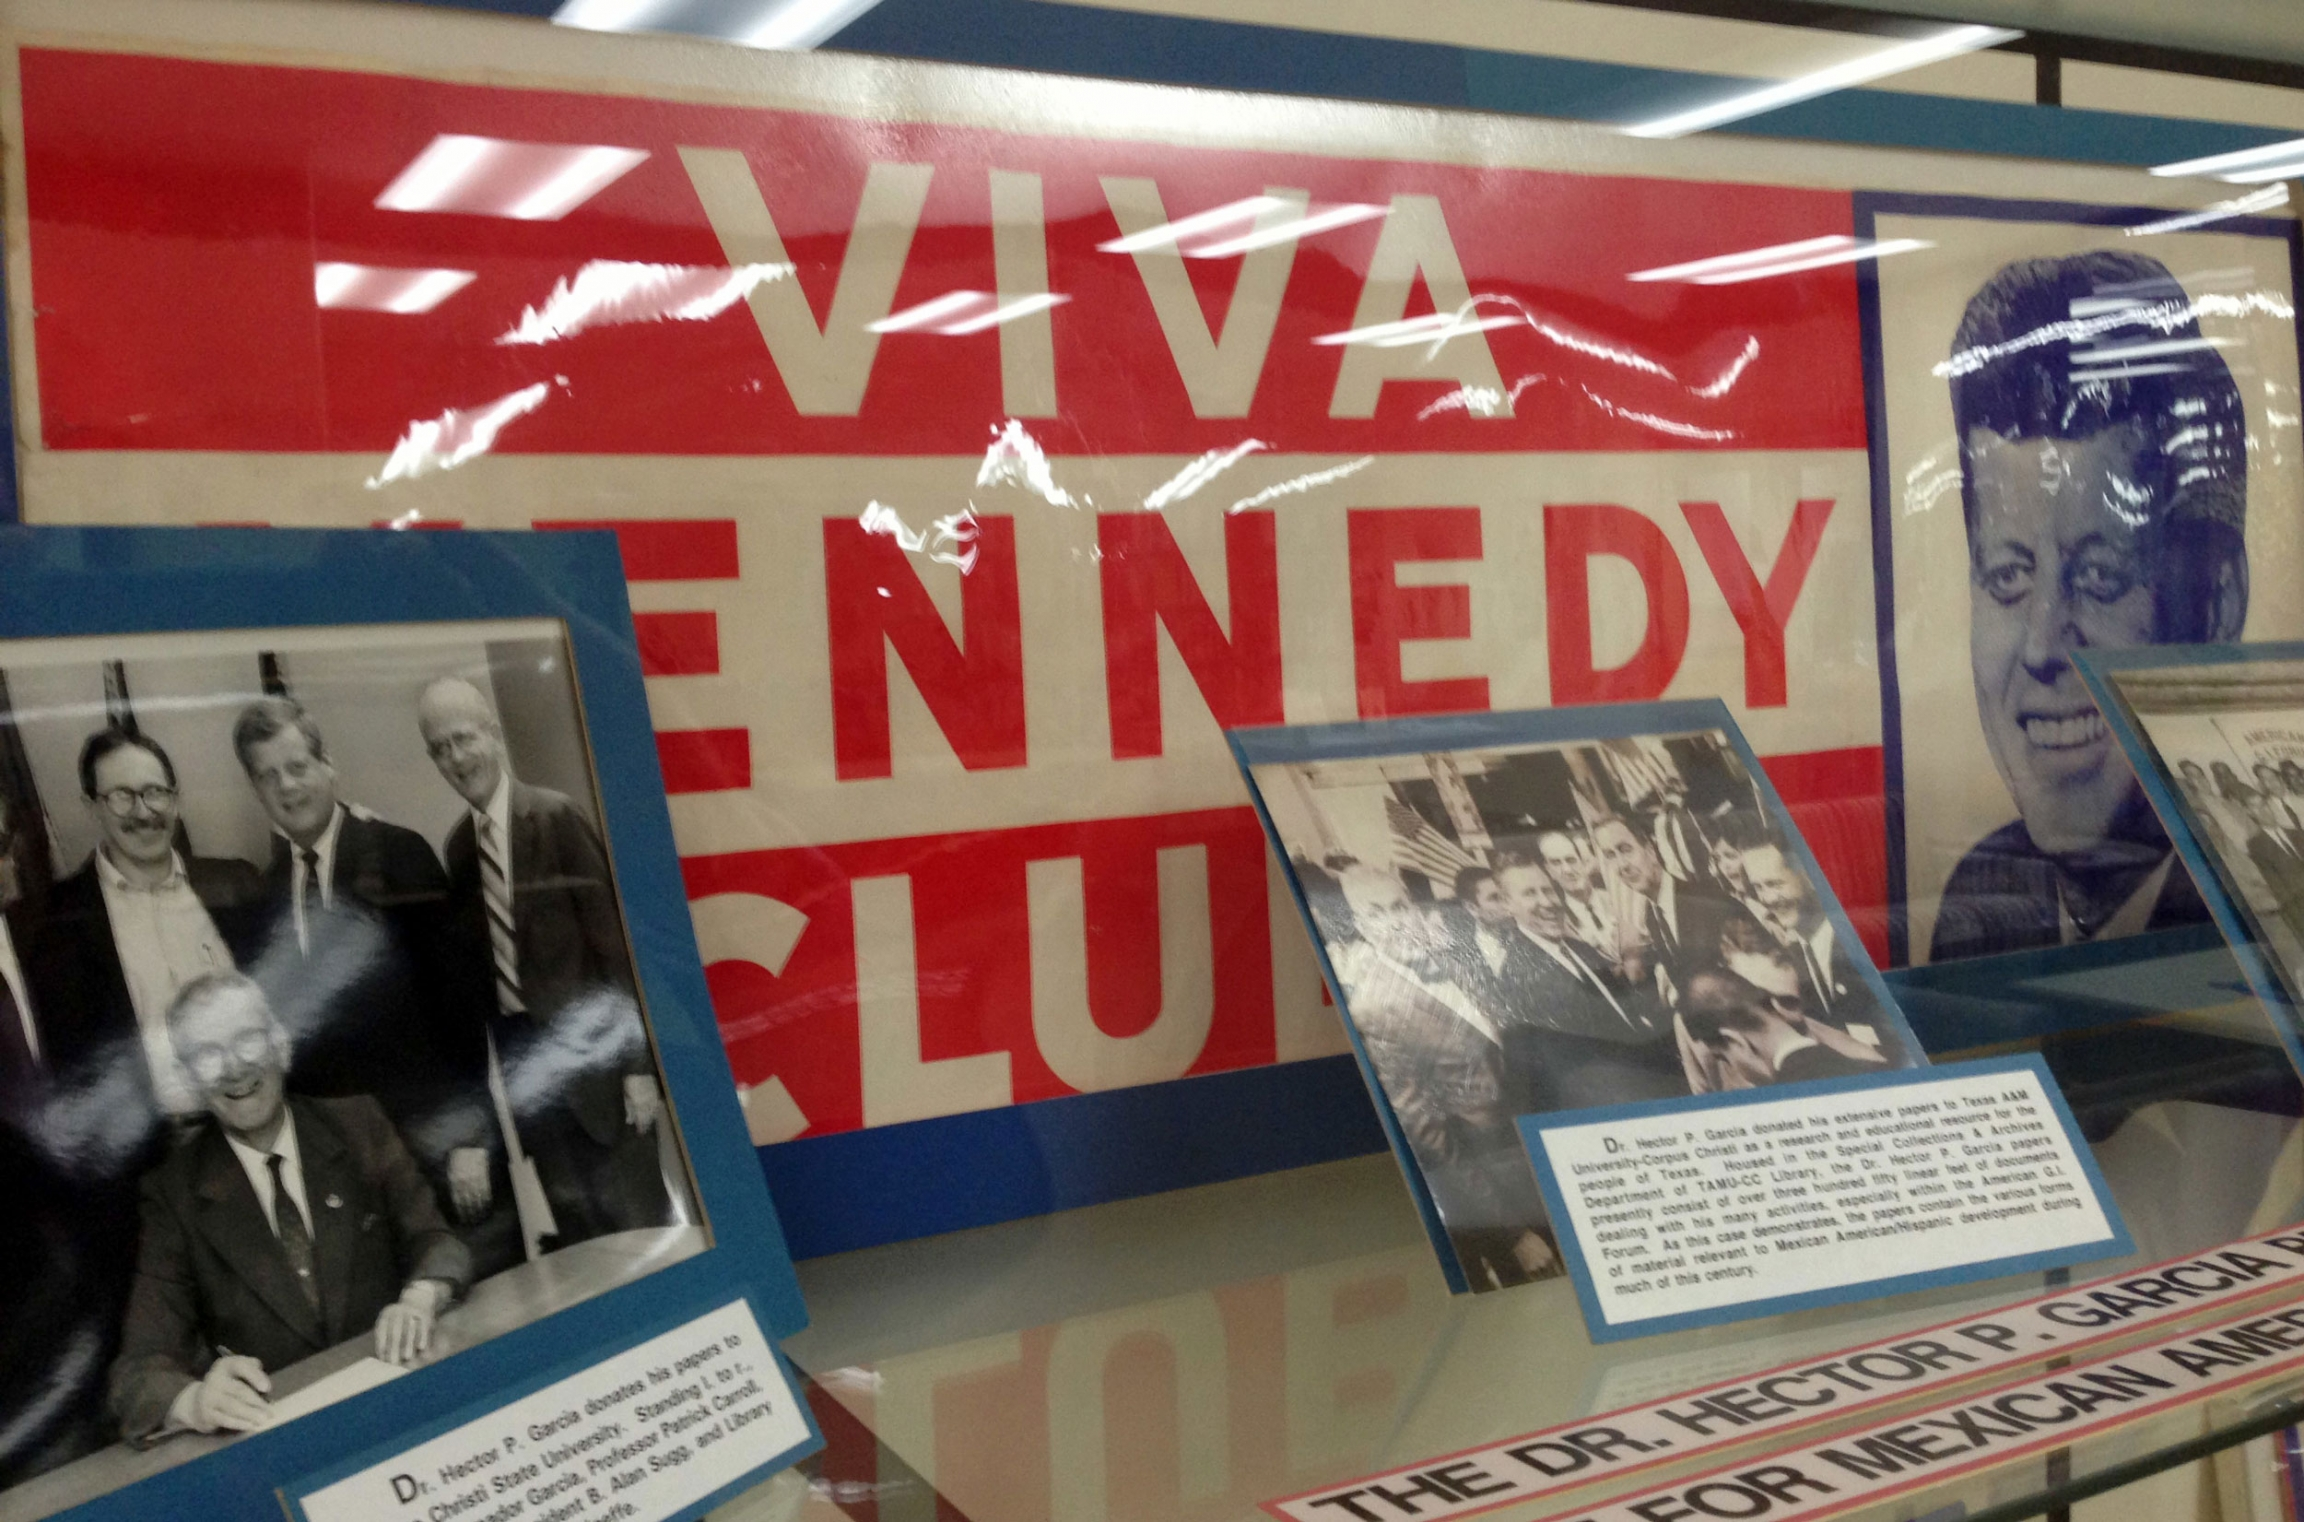 Old Viva Kennedy! campaign buttons of civil rights leader and G.I. Forum founder Dr. Hector P. Garcia, lower left, are shown at the Garcia exhibit at Texas A&M-Corpus Christi, Texas.